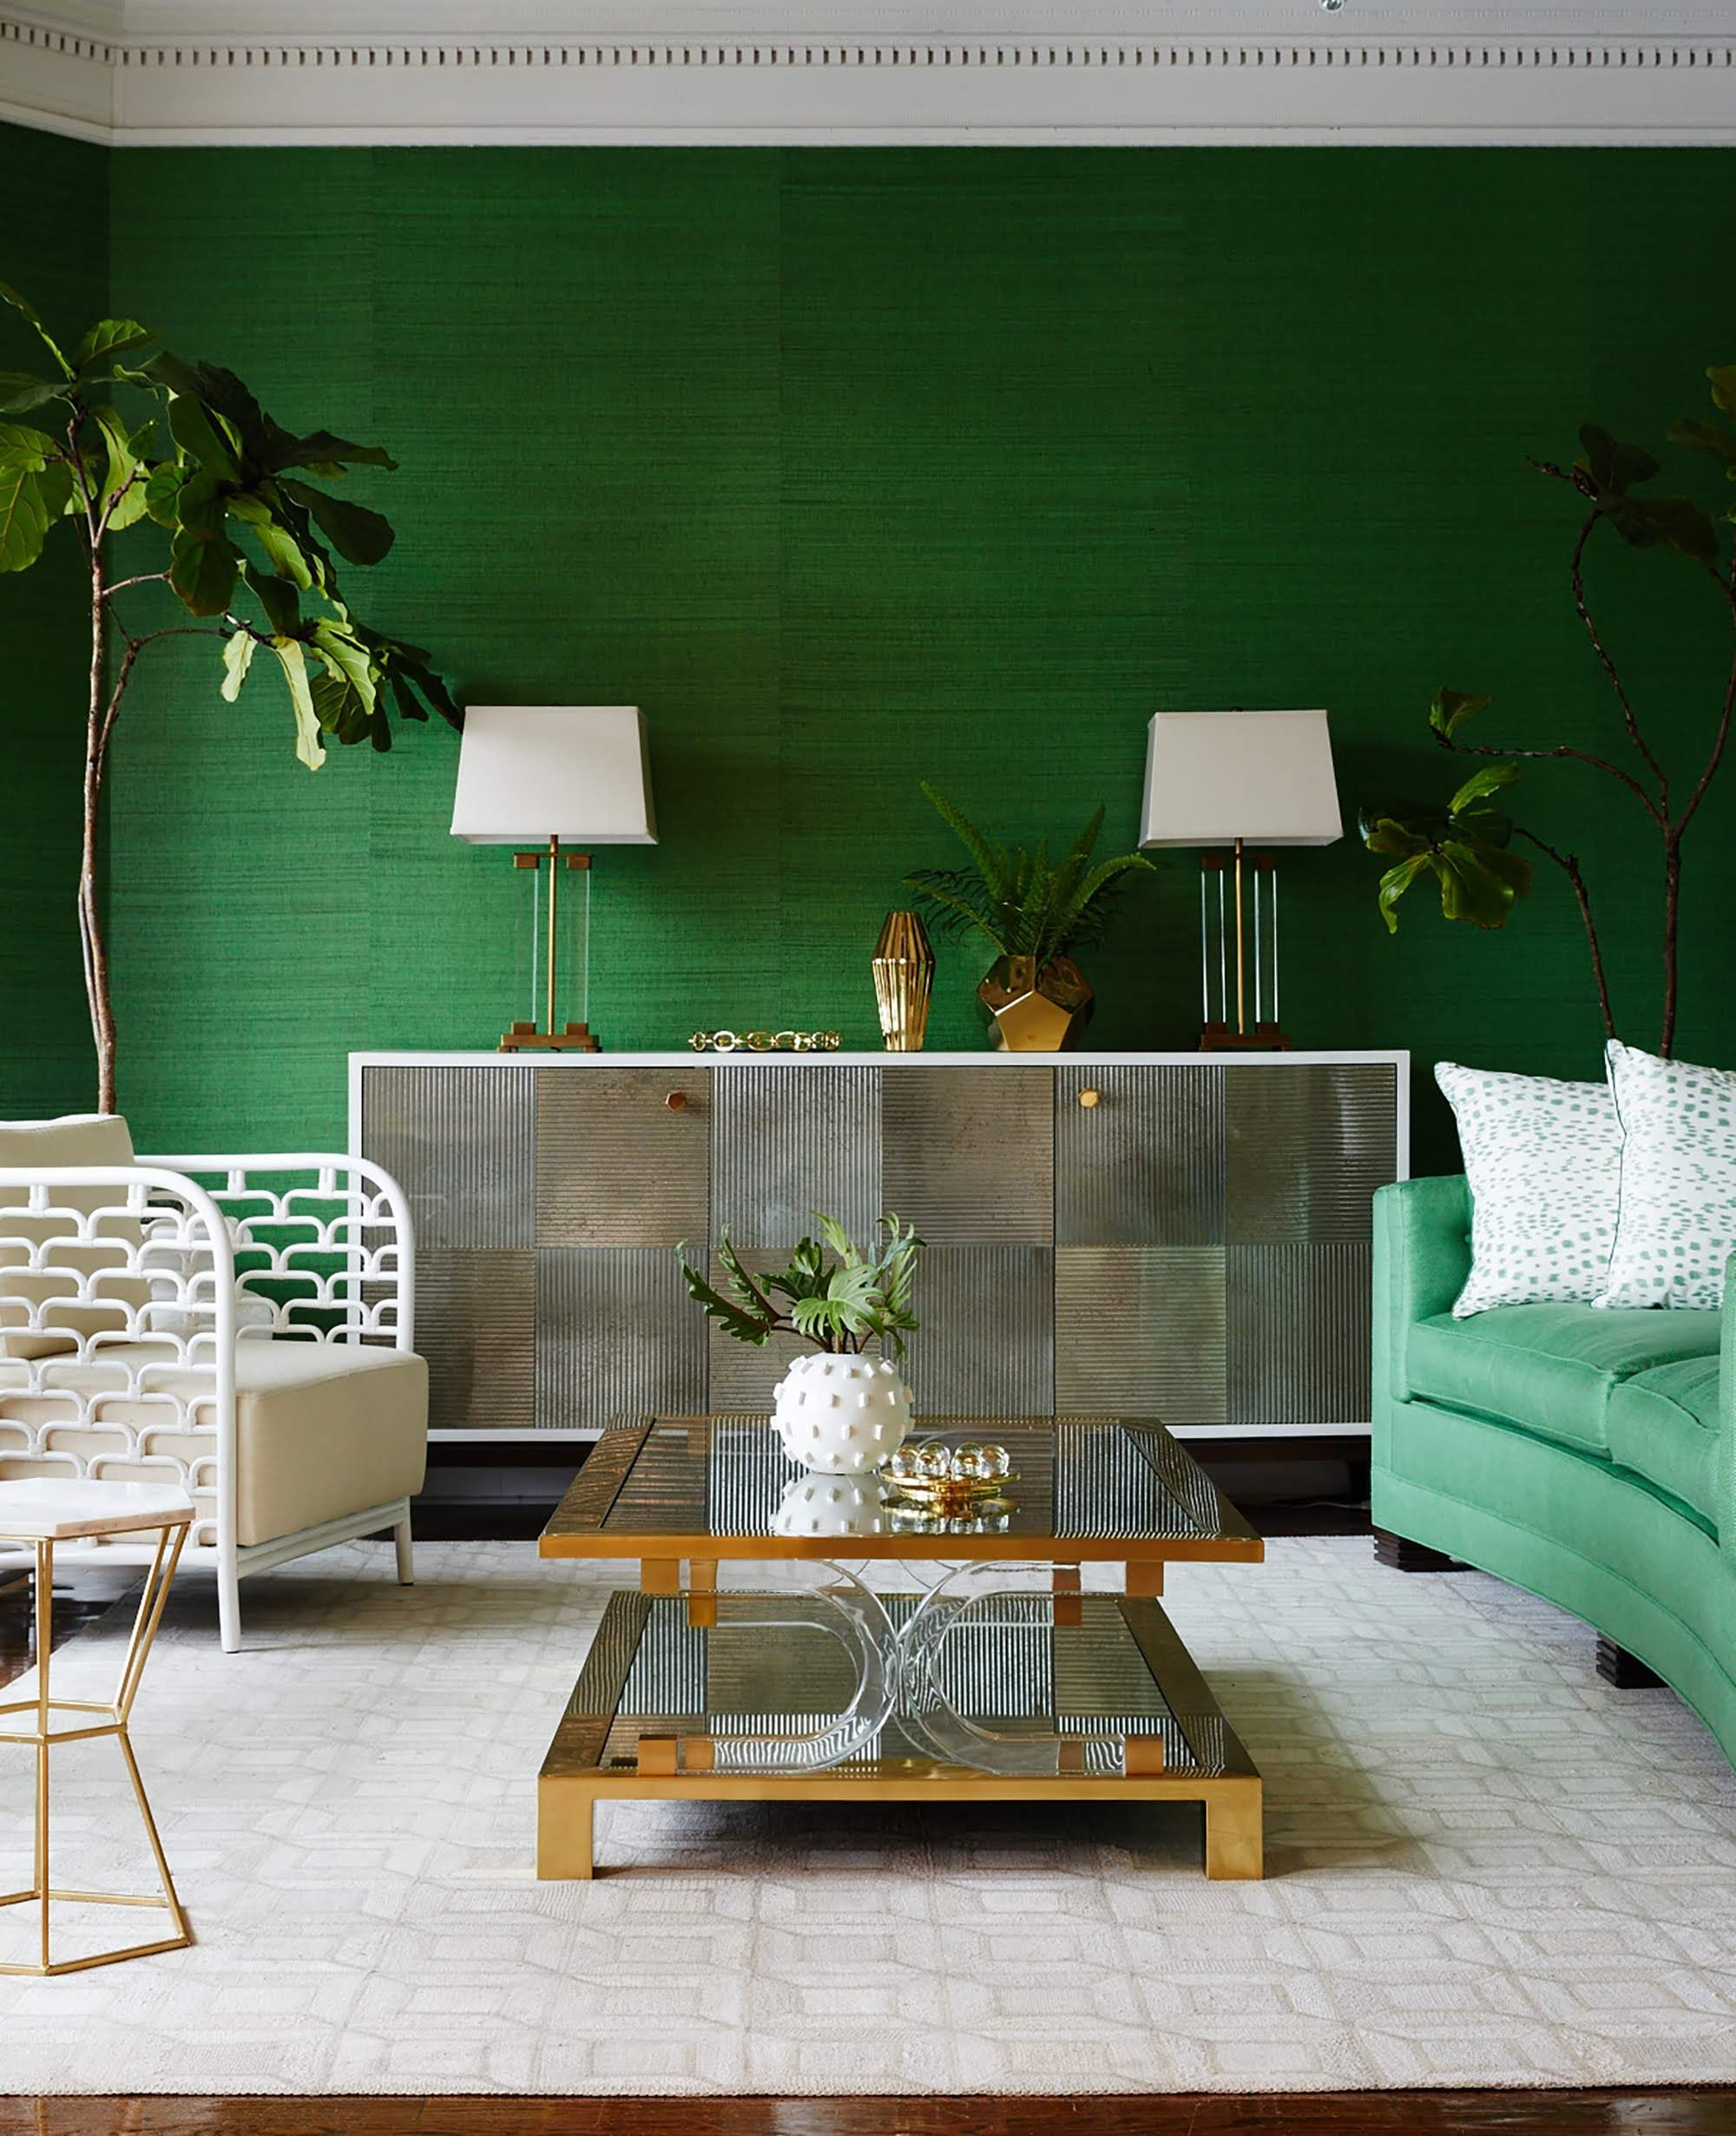 The Pinterest 100 Annual Report Predicts This Home Trend Will Be Big In 2020 Emerald Green Living Room Living Room Green Living Room Colors